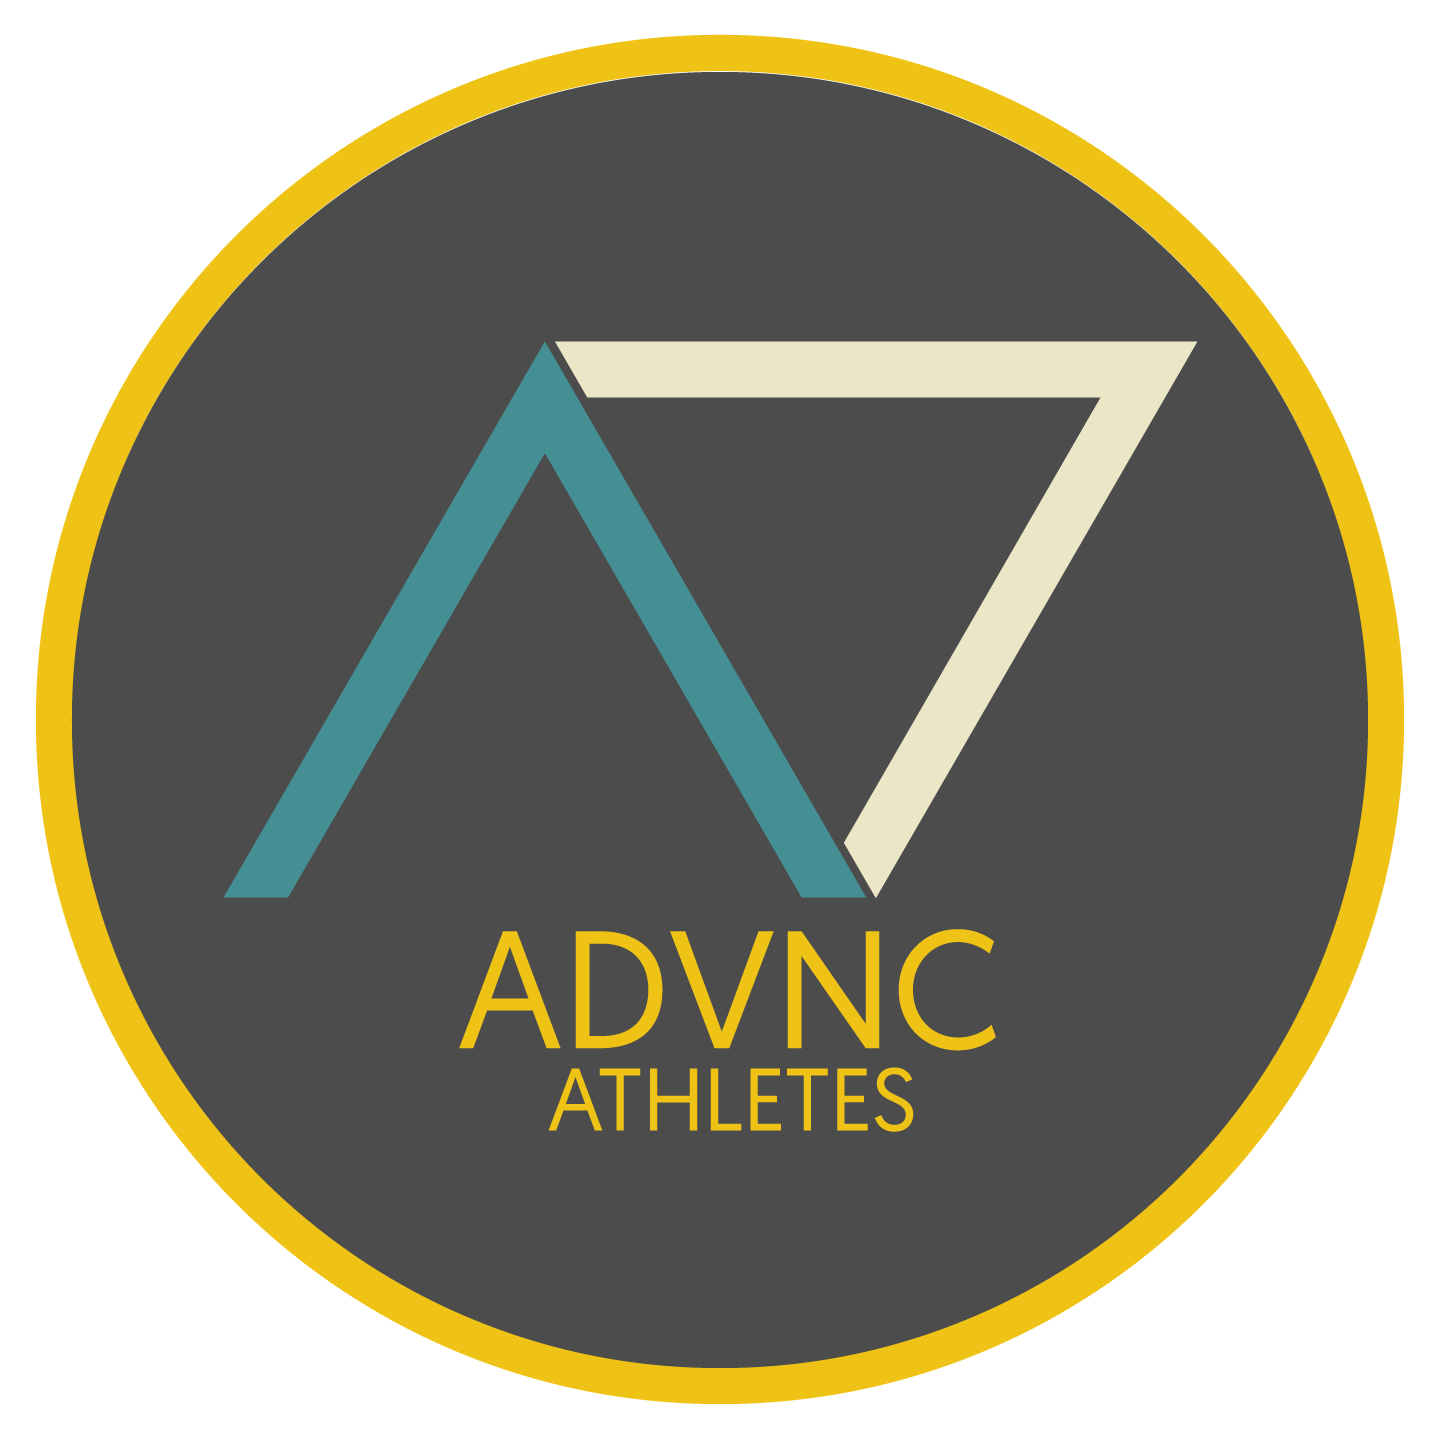 ADVNC Athletes